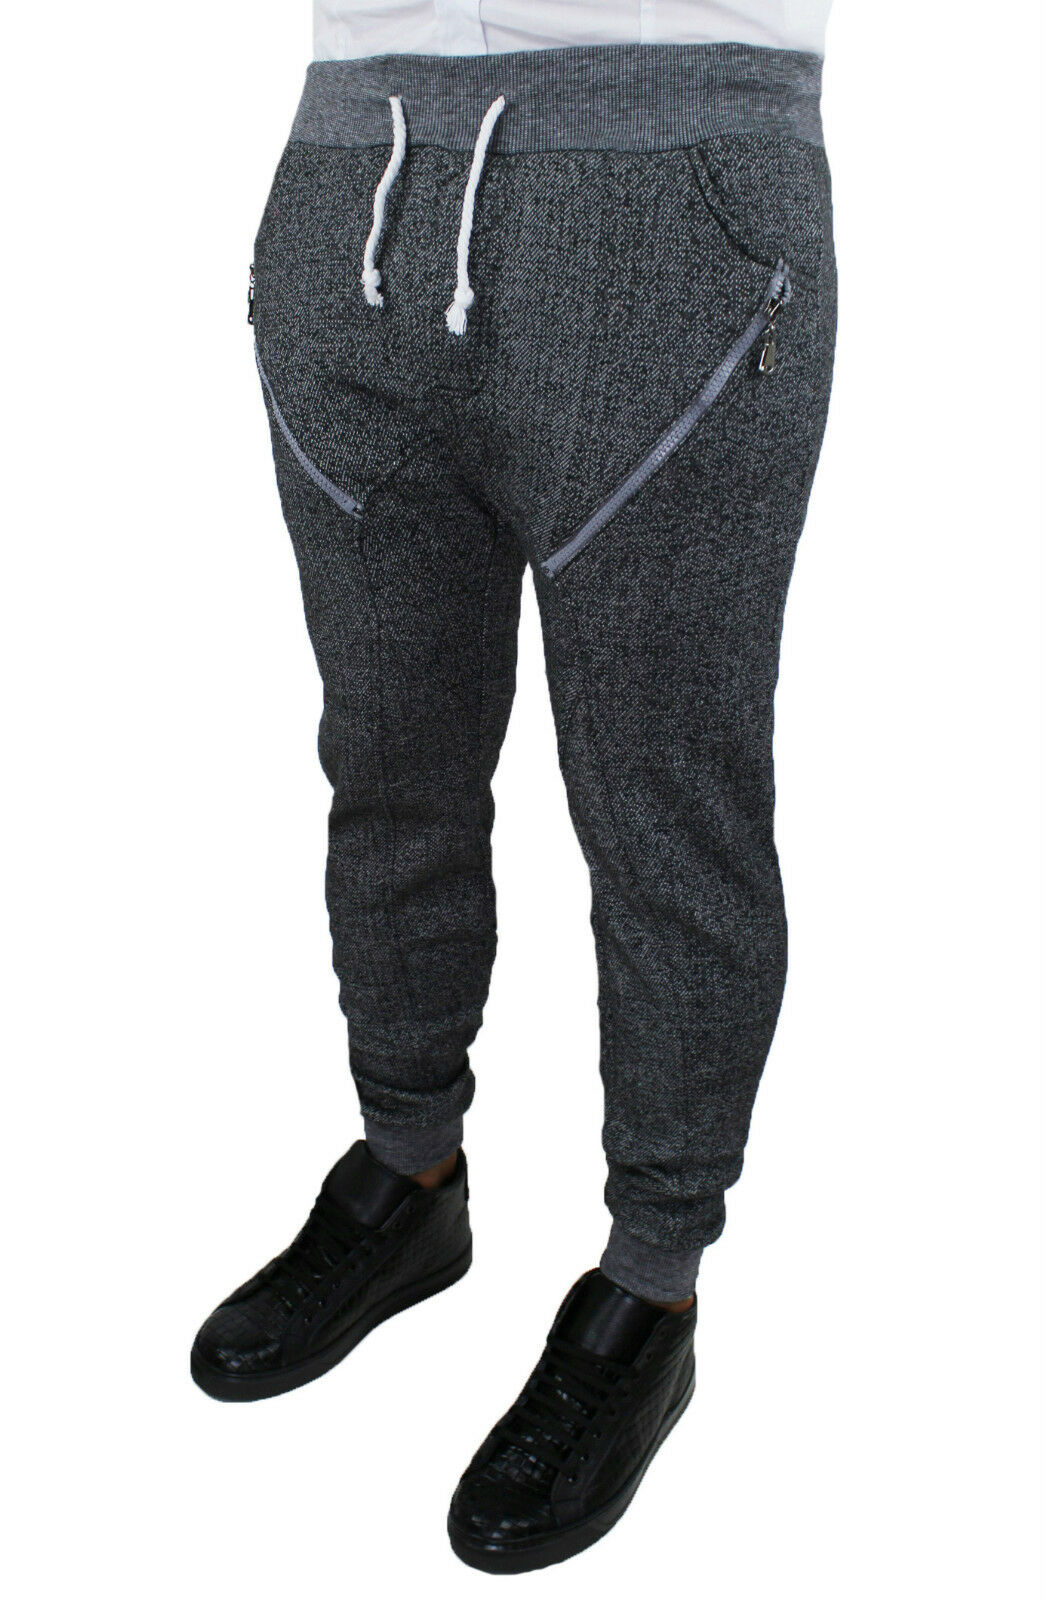 TROUSERS CASUAL MAN SLIM FIT JEANS SWEAT ZIP JUMPSUIT COTTON S M L XL XXL 3XL